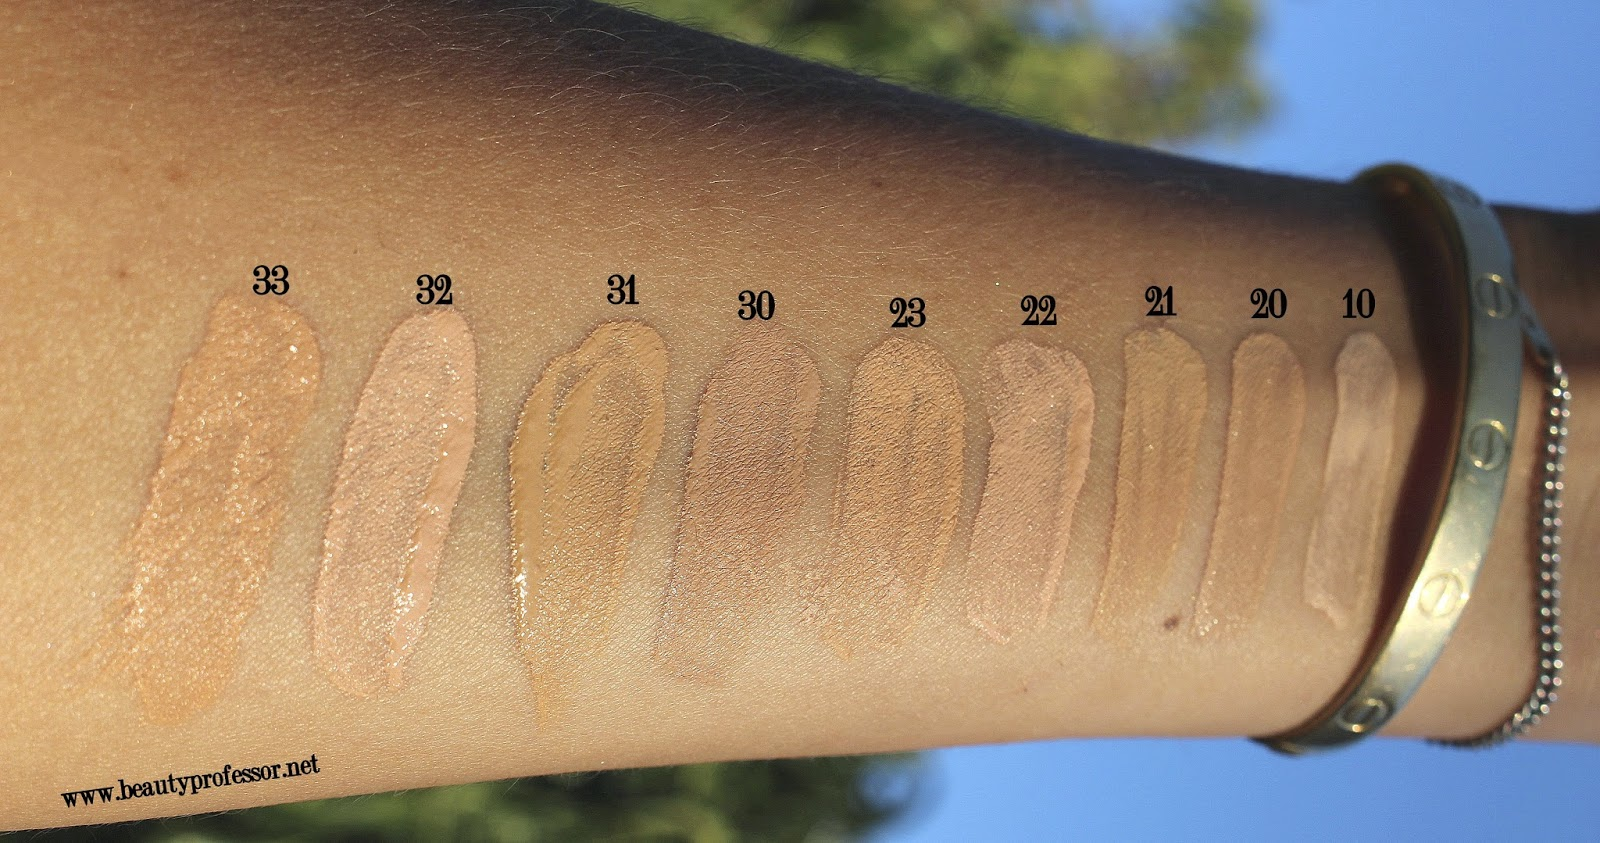 Dior Star Foundation Review Swatches Of All Shades